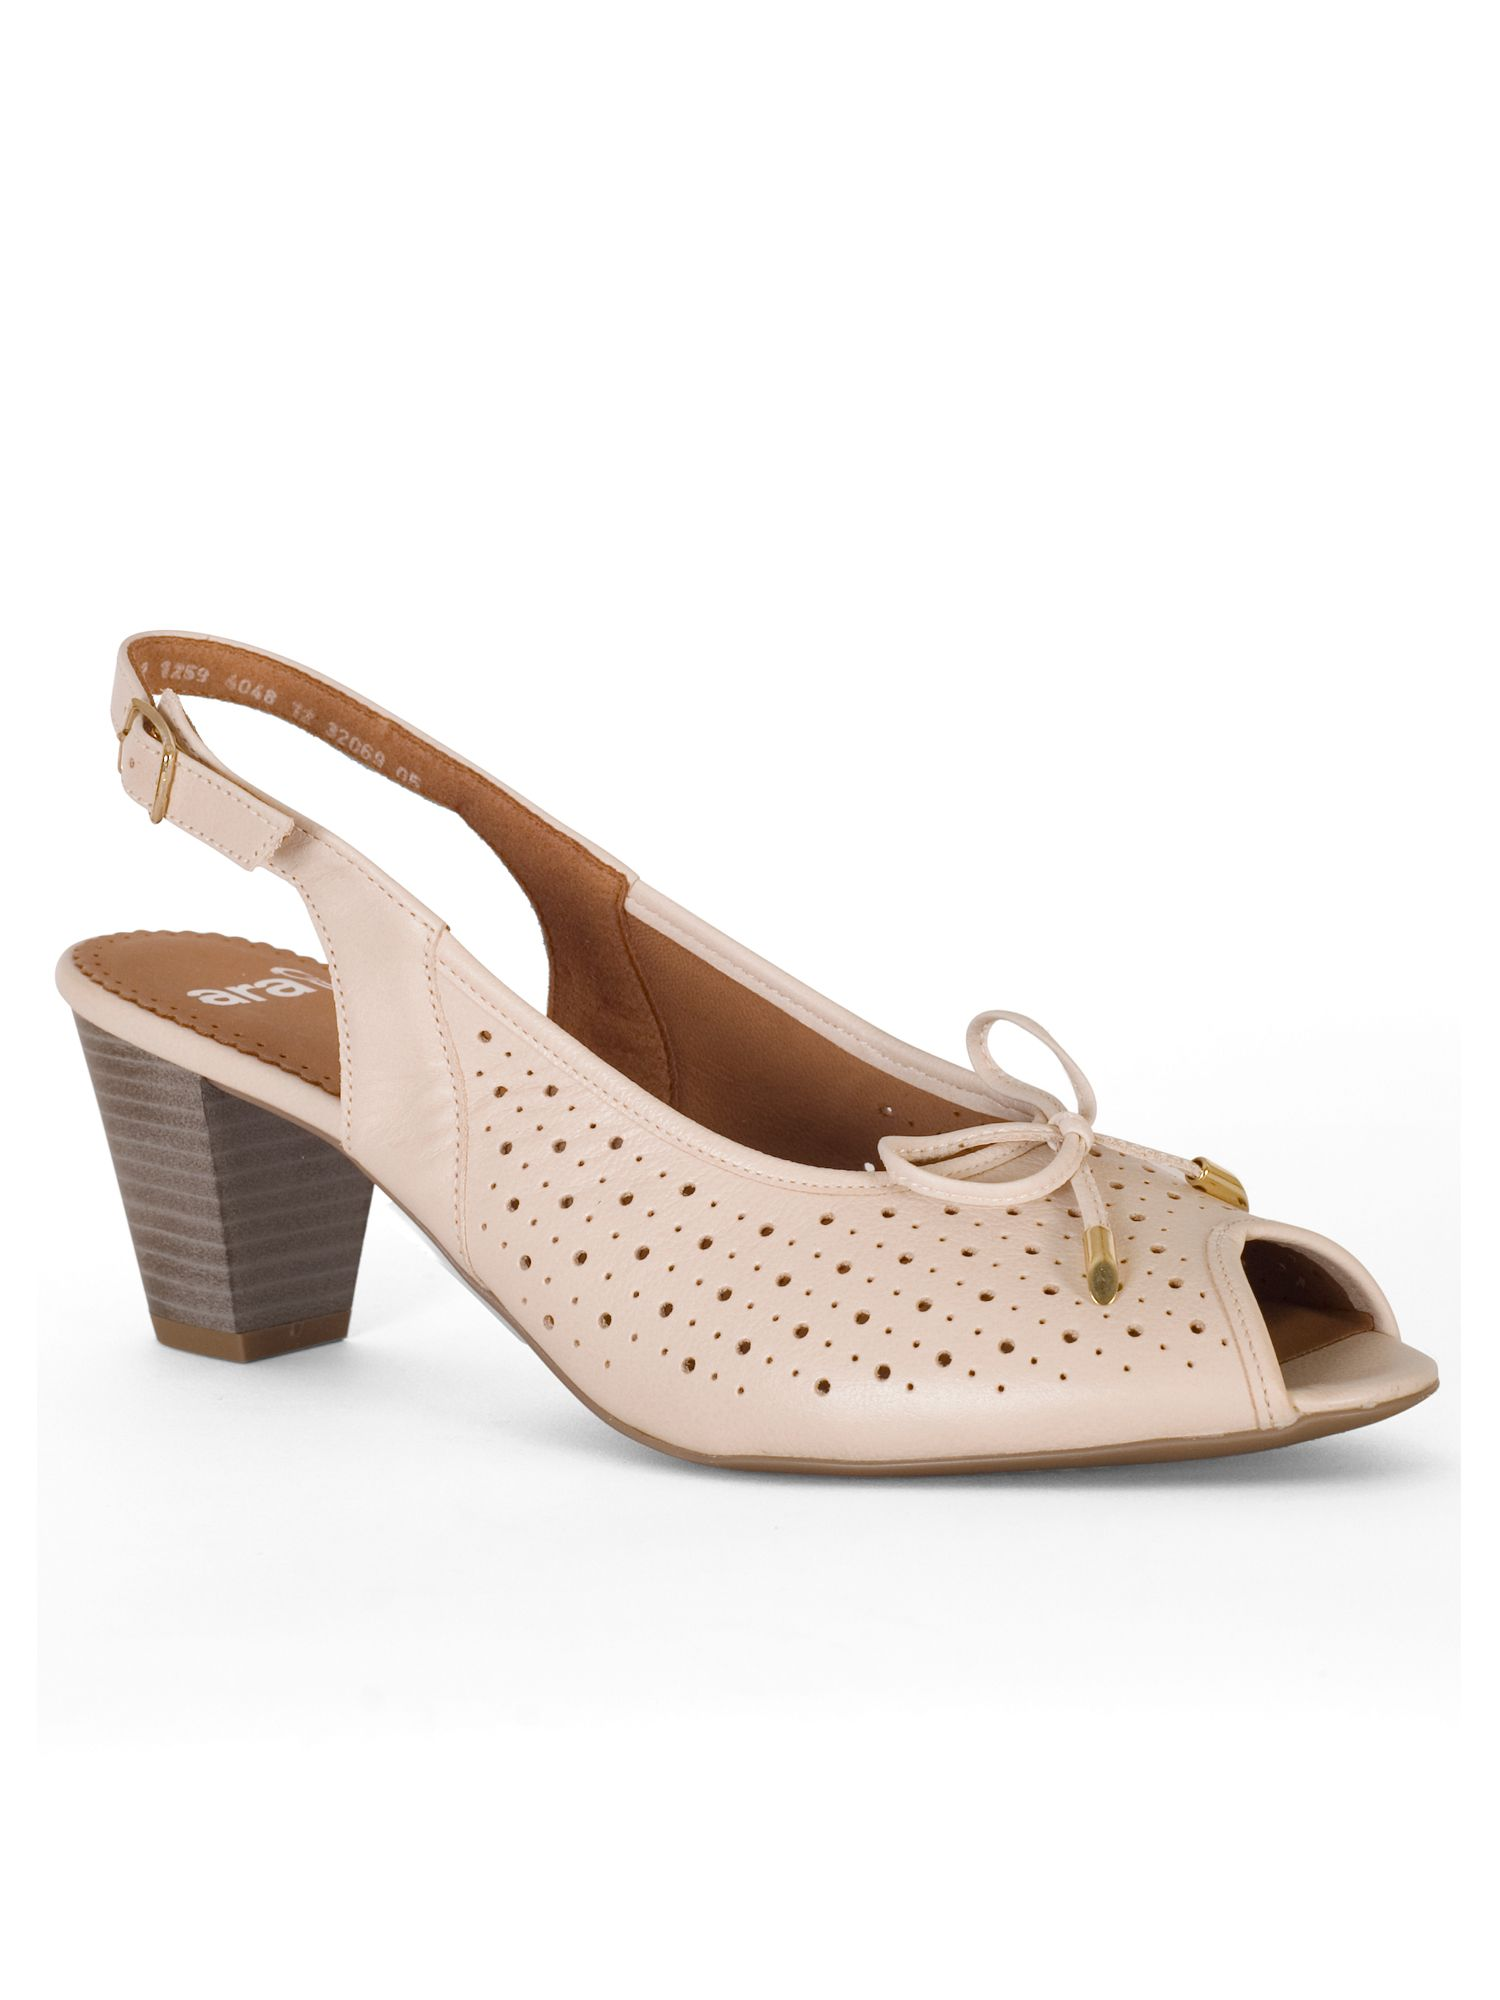 Chesca Perforated Peep Toe H Fit Nubuck Shoe, White